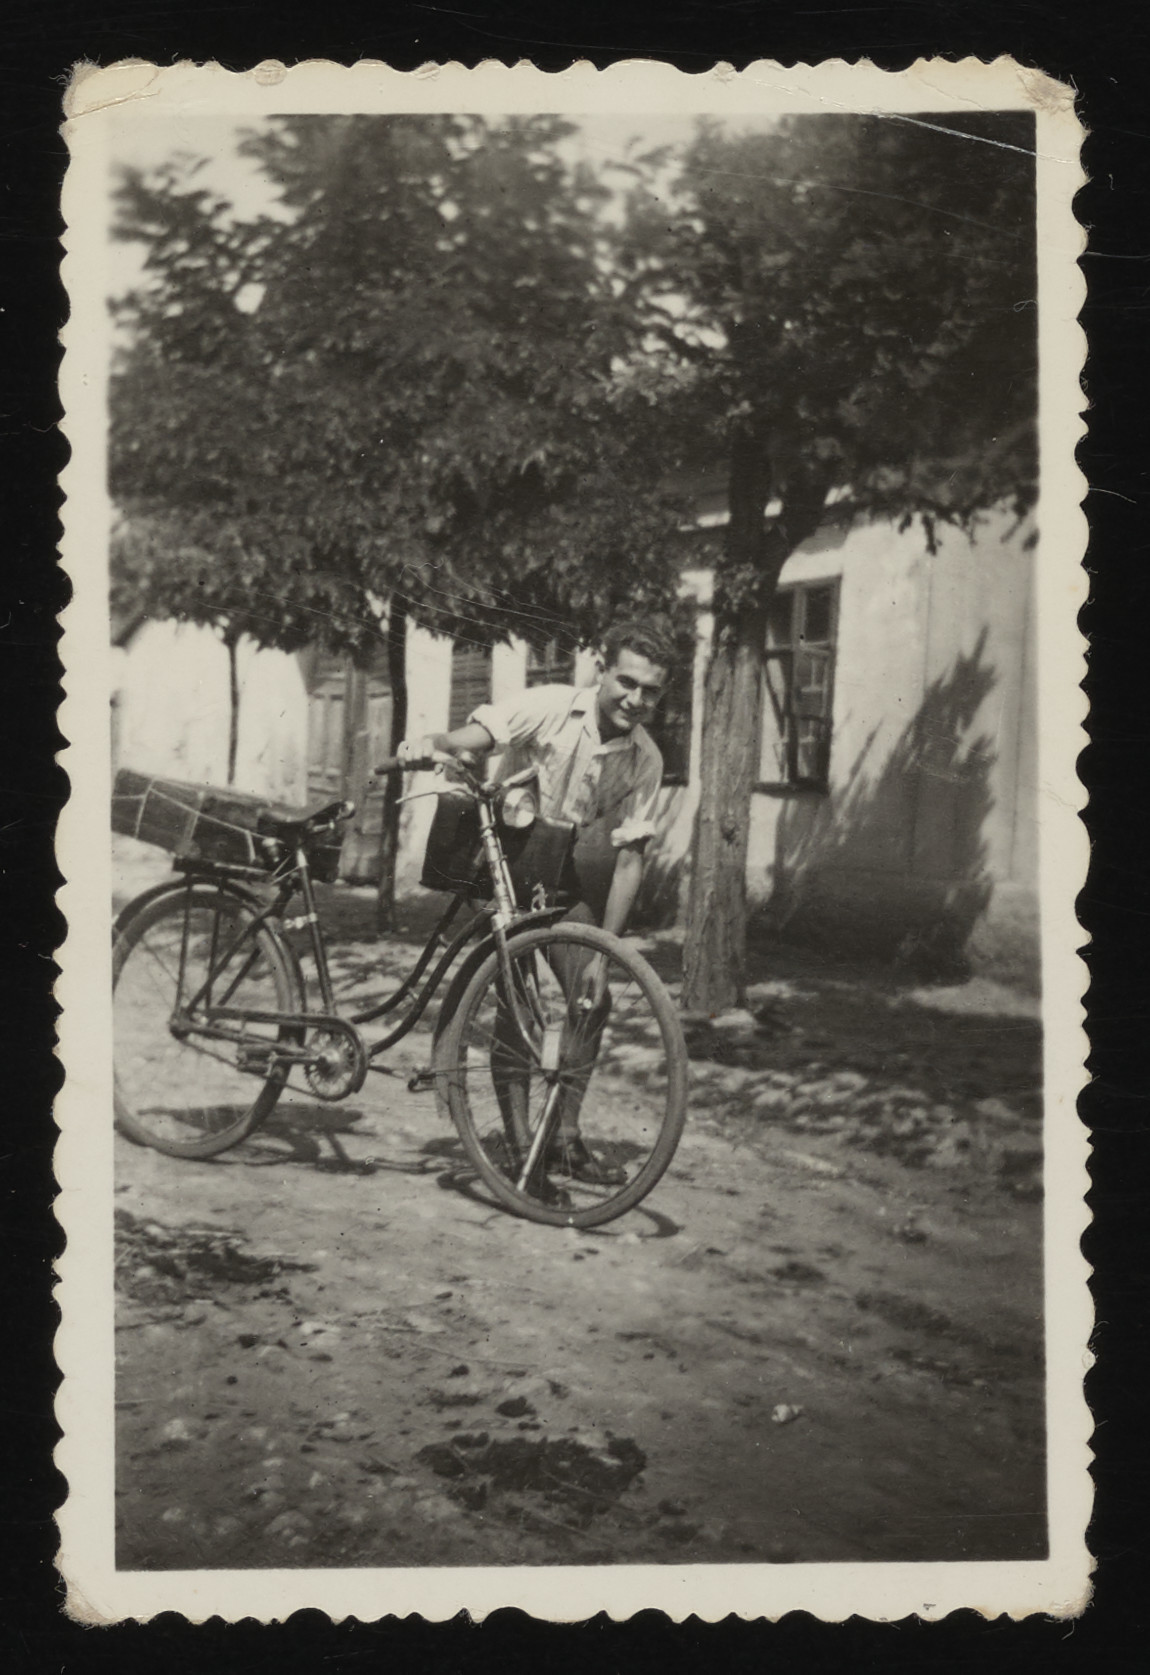 Paul Ornstein, a young Jewish man, takes his bicycle for a 100 km ride to visit his girlfriend in wartime Hungary.